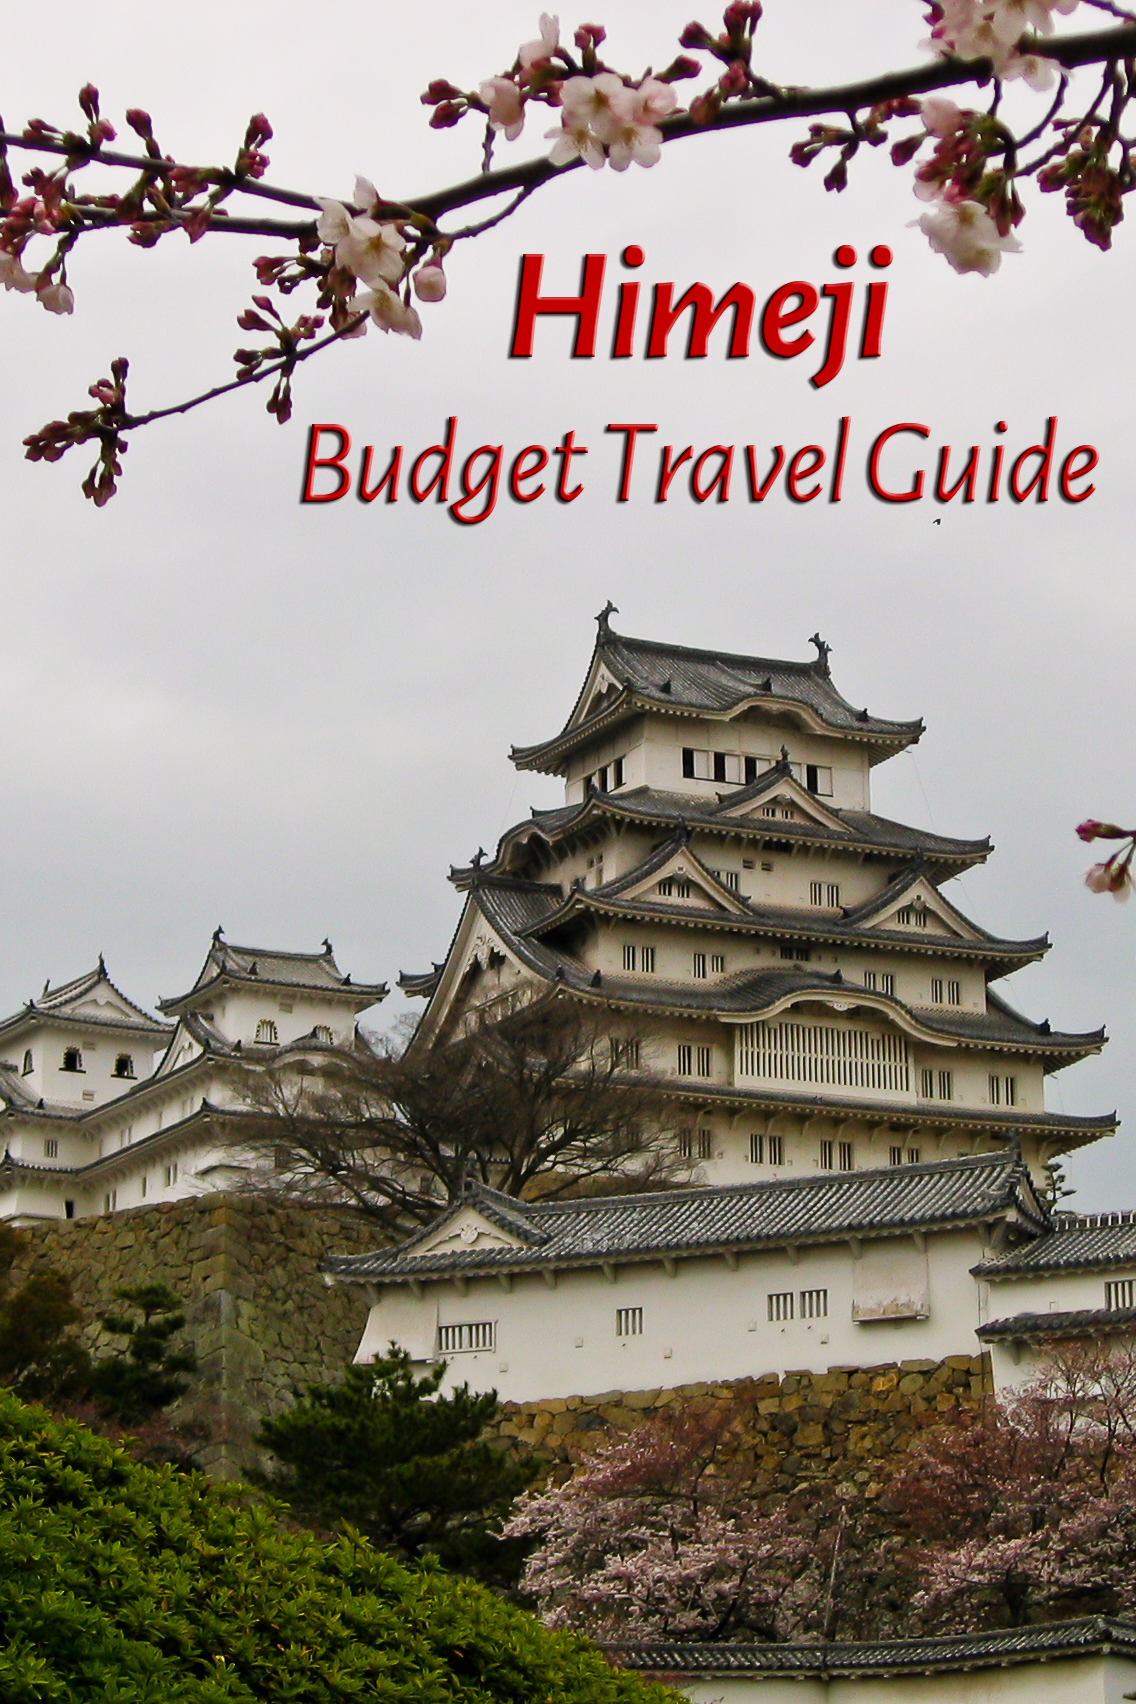 Budget travel guide for Himeji in Japan